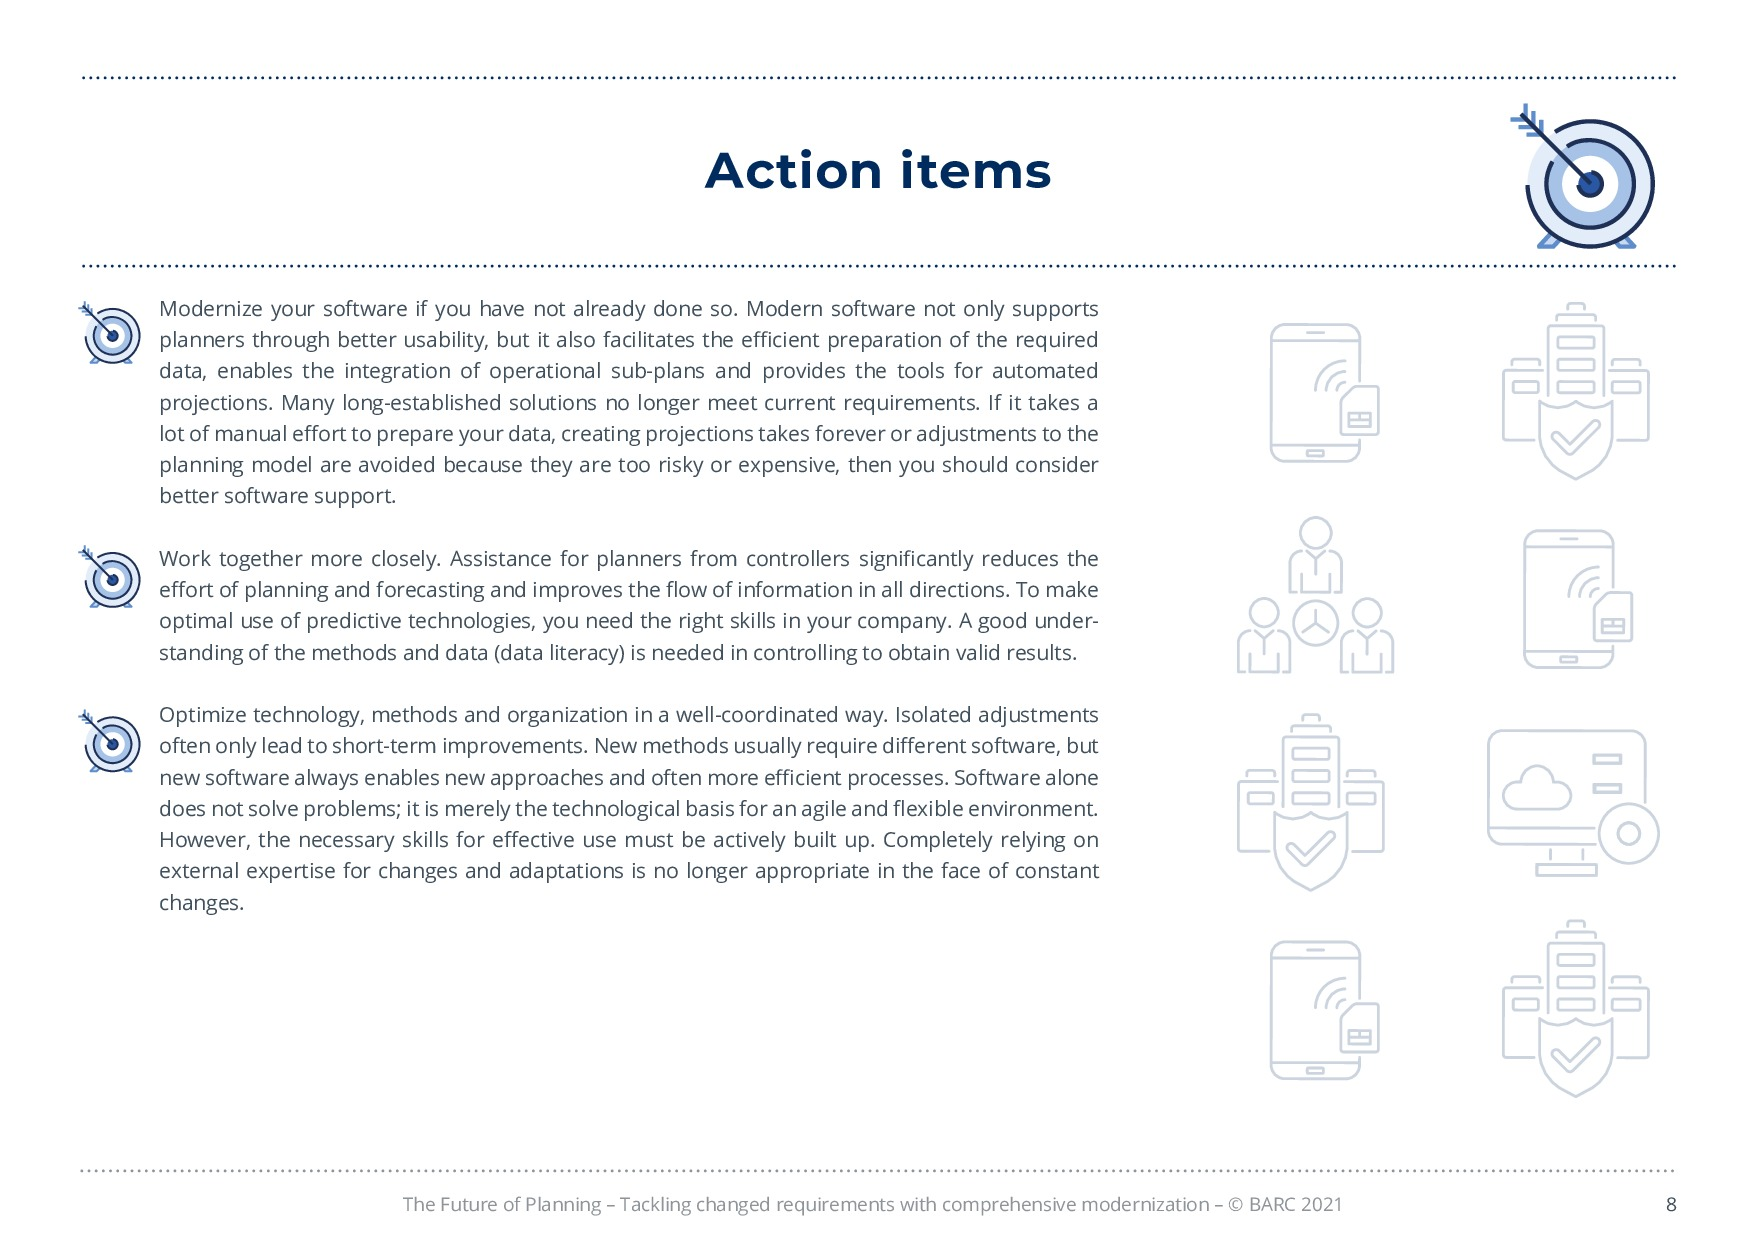 BARC – The Future of Planning | Page 8